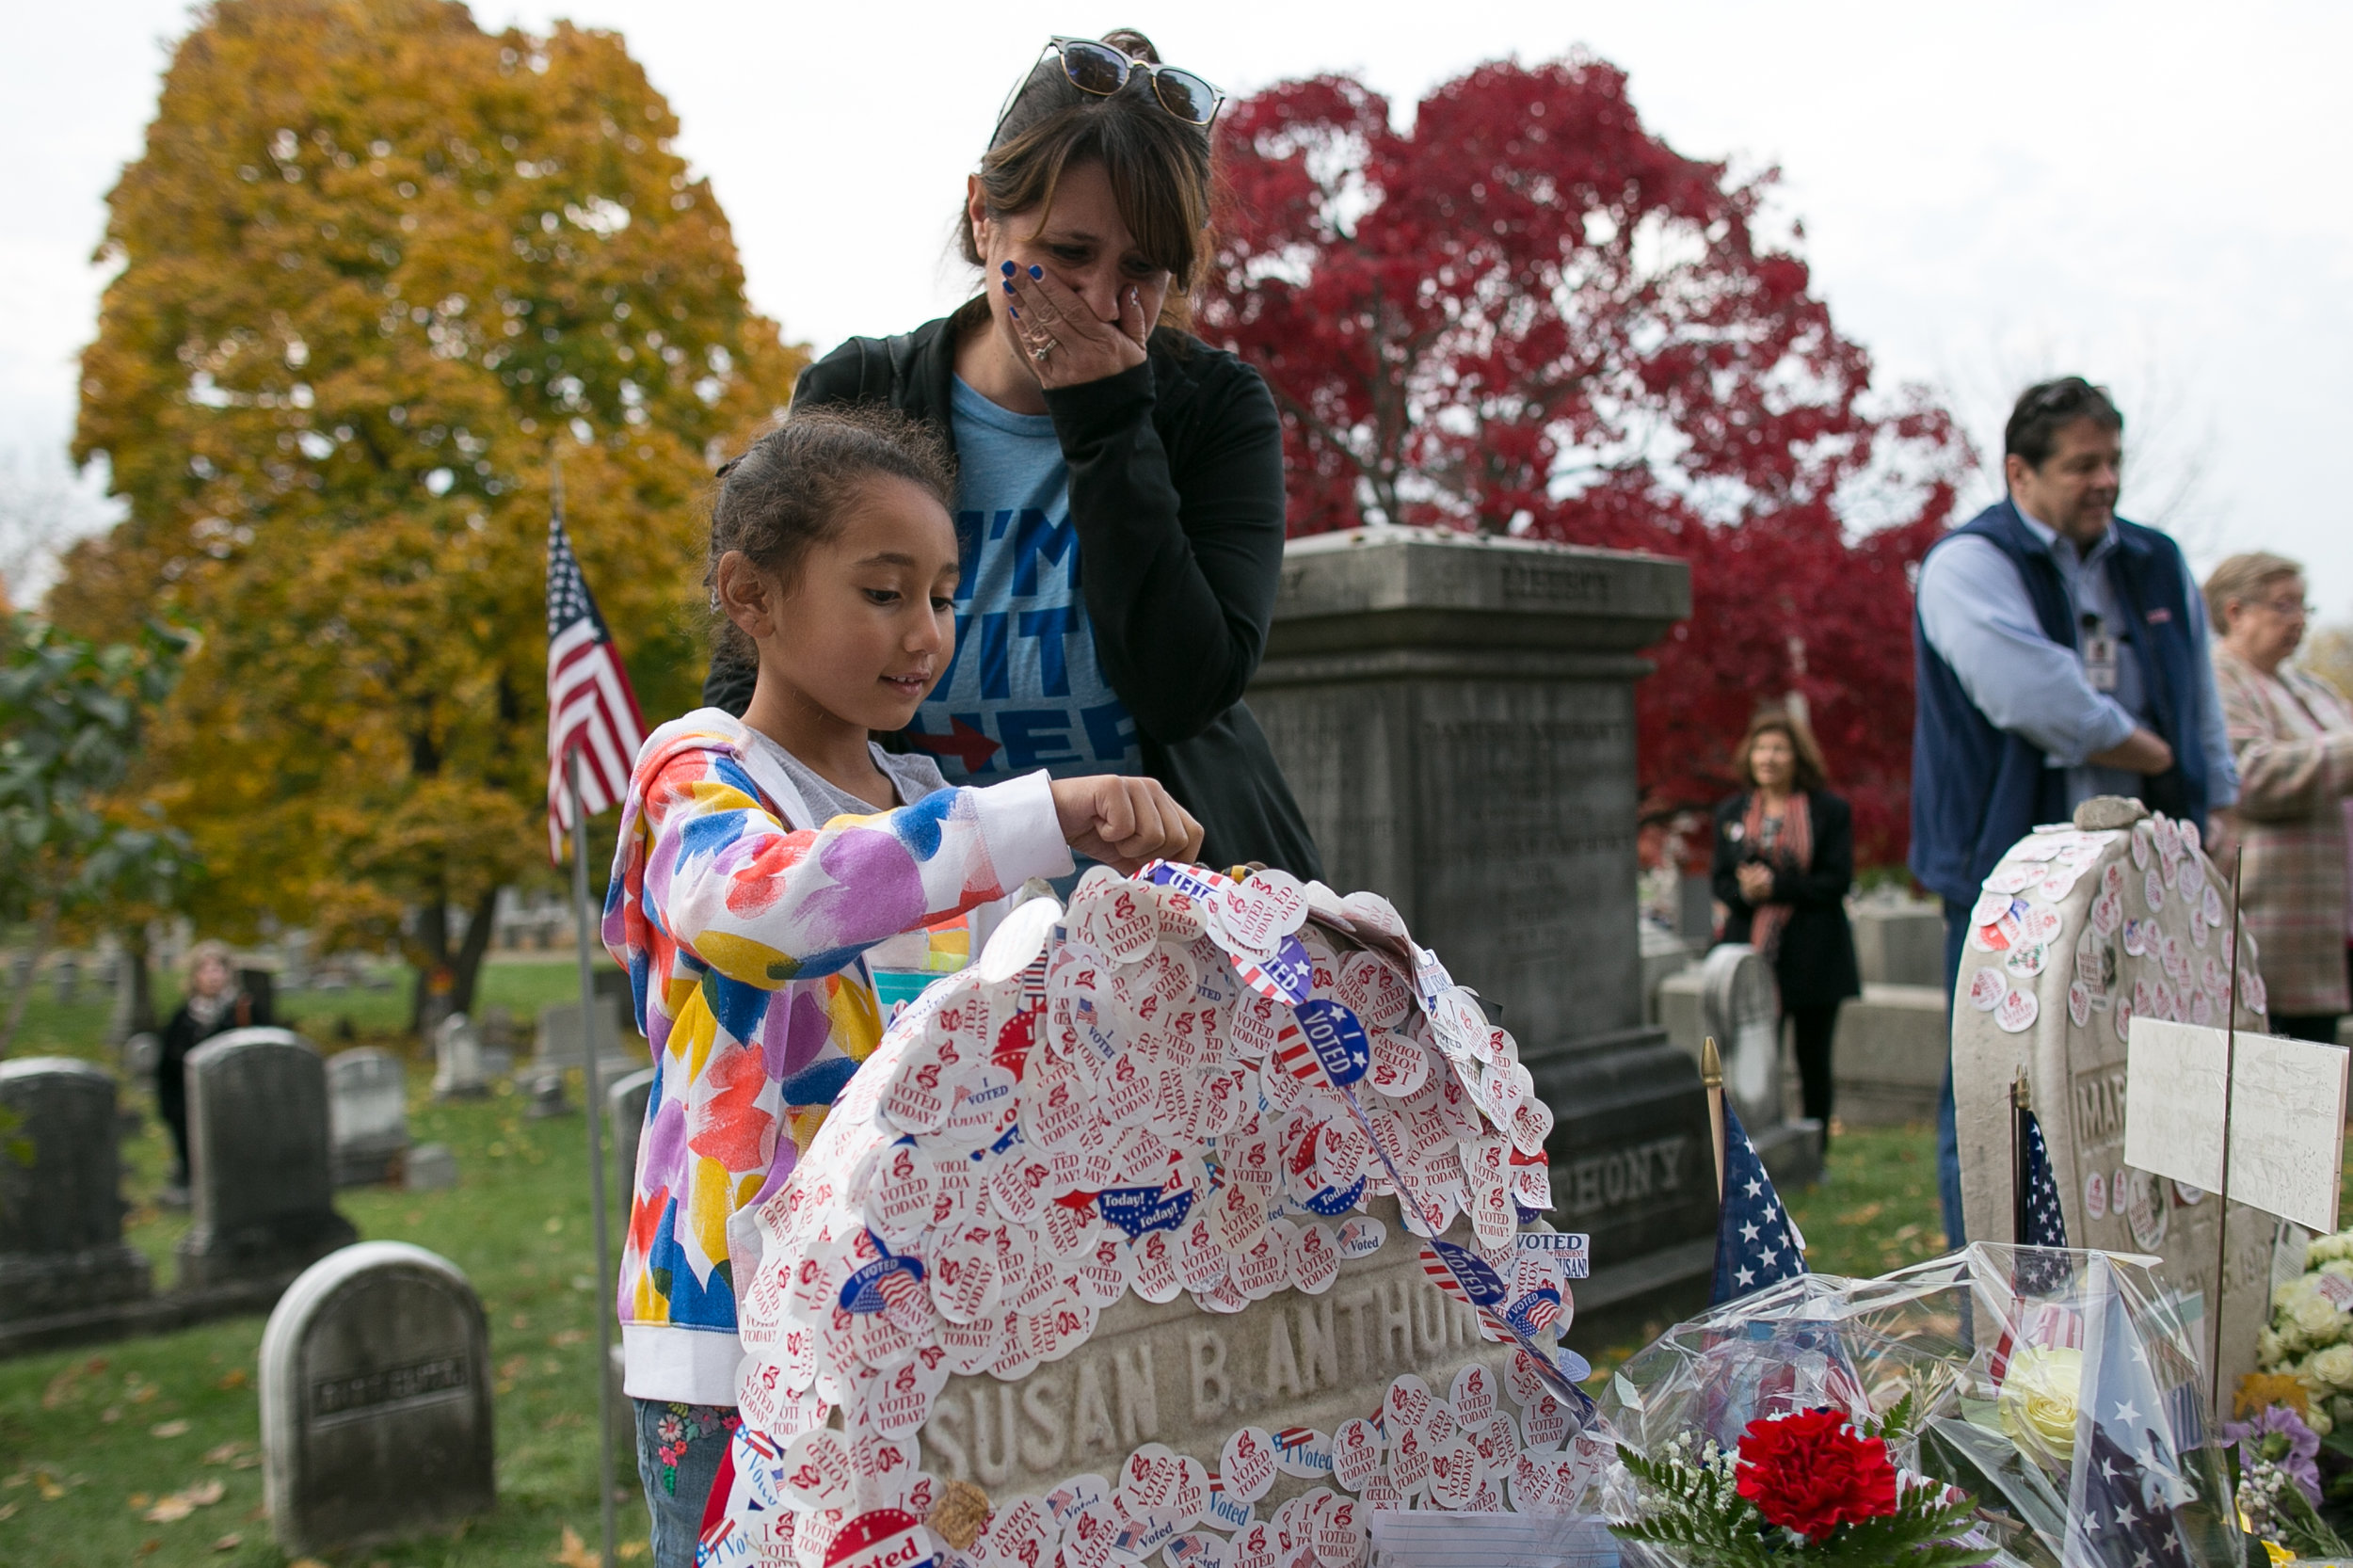 """Betsy Wilson tears up as her daughter Gabby Wilson places an """"I Voted Today"""" sticker on the gravesite of Susan B. Anthony, the social reformer who played a key part in the movement for women's suffrage, at Mount Hope Cemetery in Rochester on Election Day, November 8, 2016."""